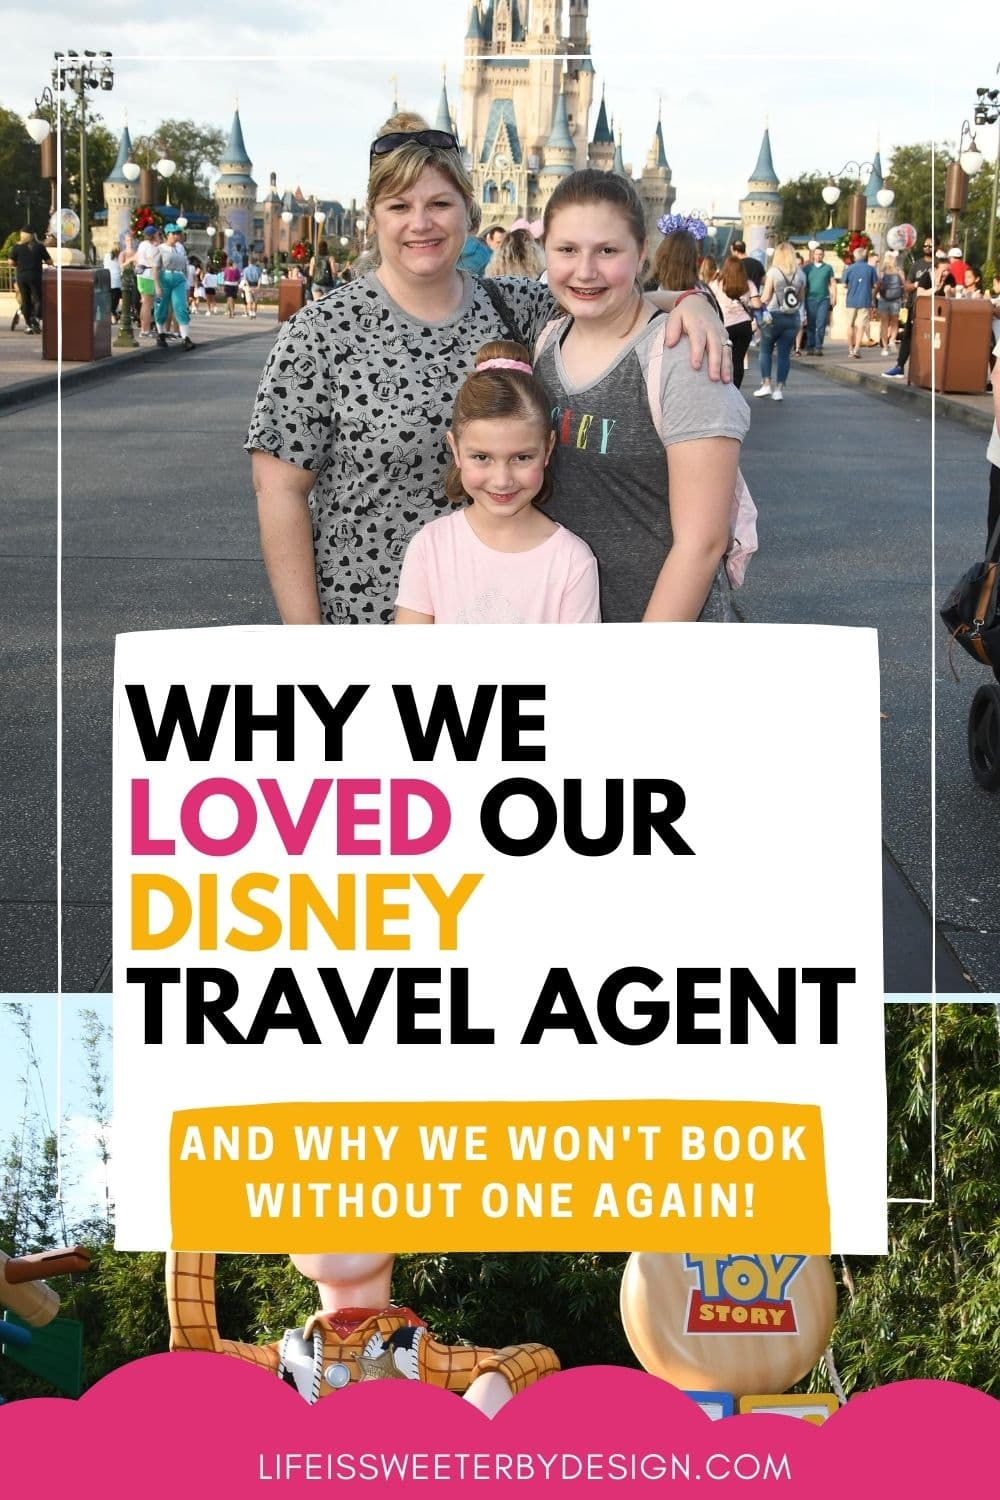 Why We Loved Our Disney Travel Agent